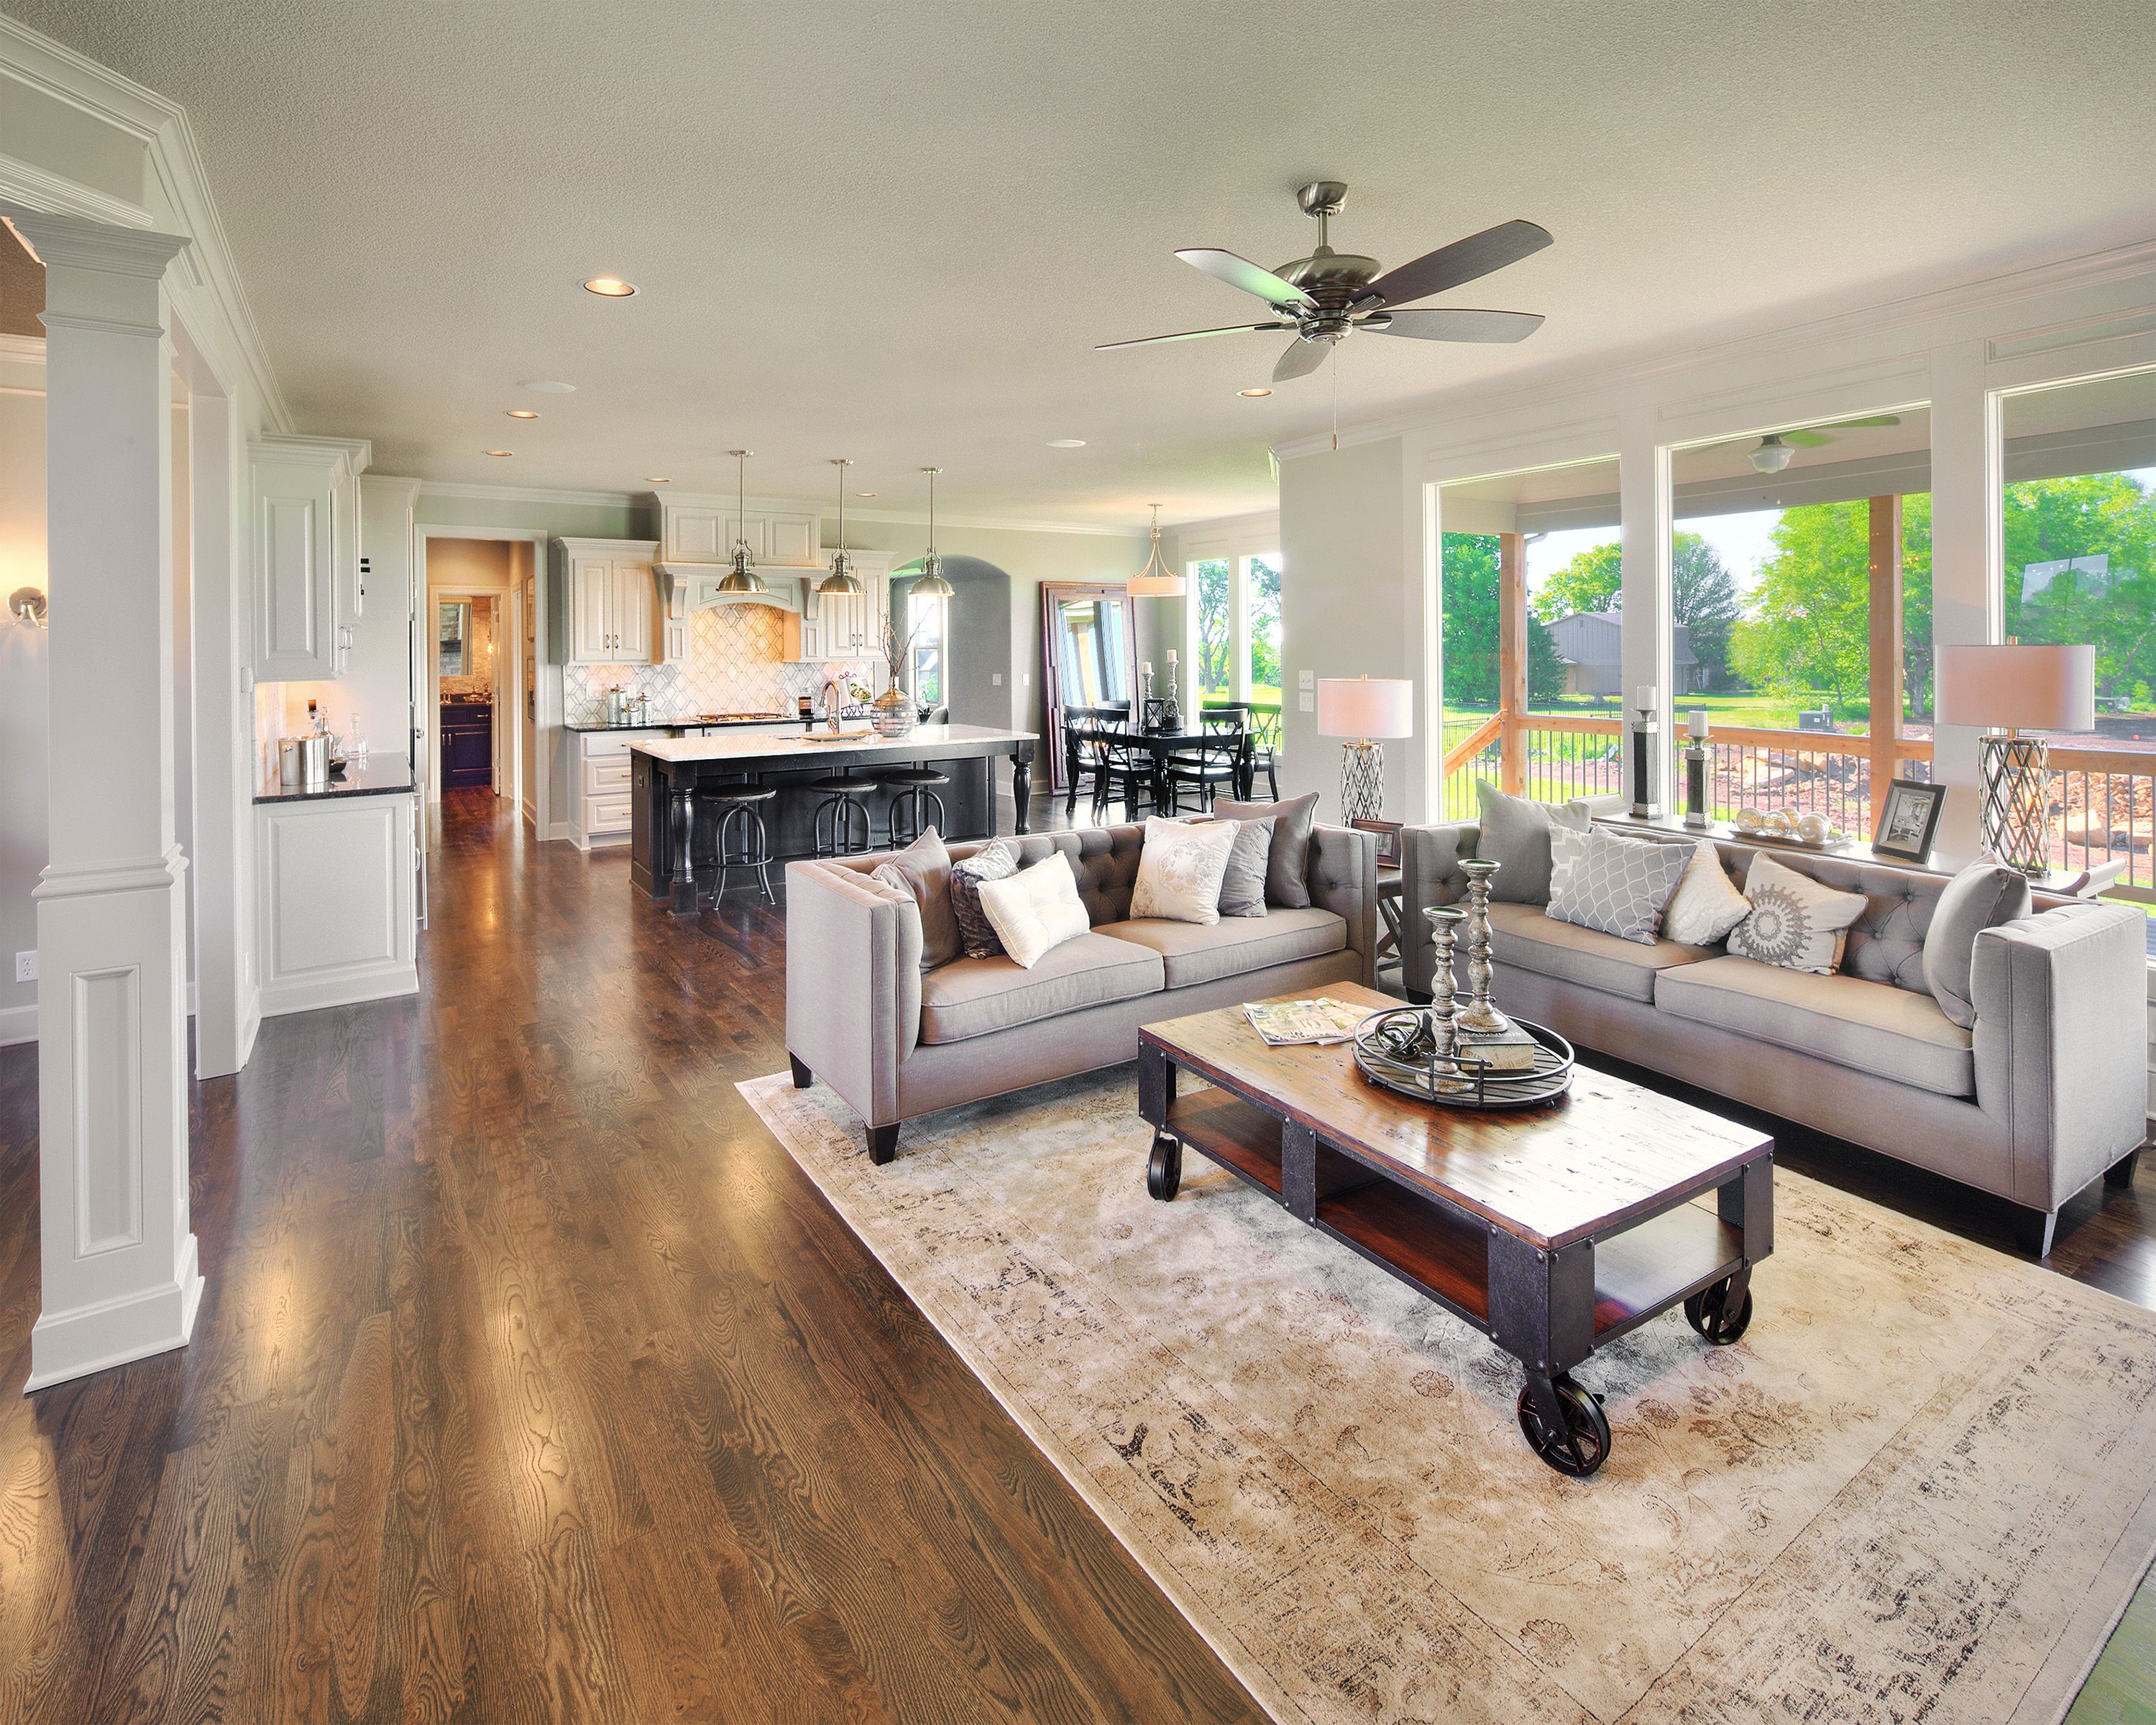 Craftsman Home Interior Design Concept open concept livingbickimer homes, interior design, couches